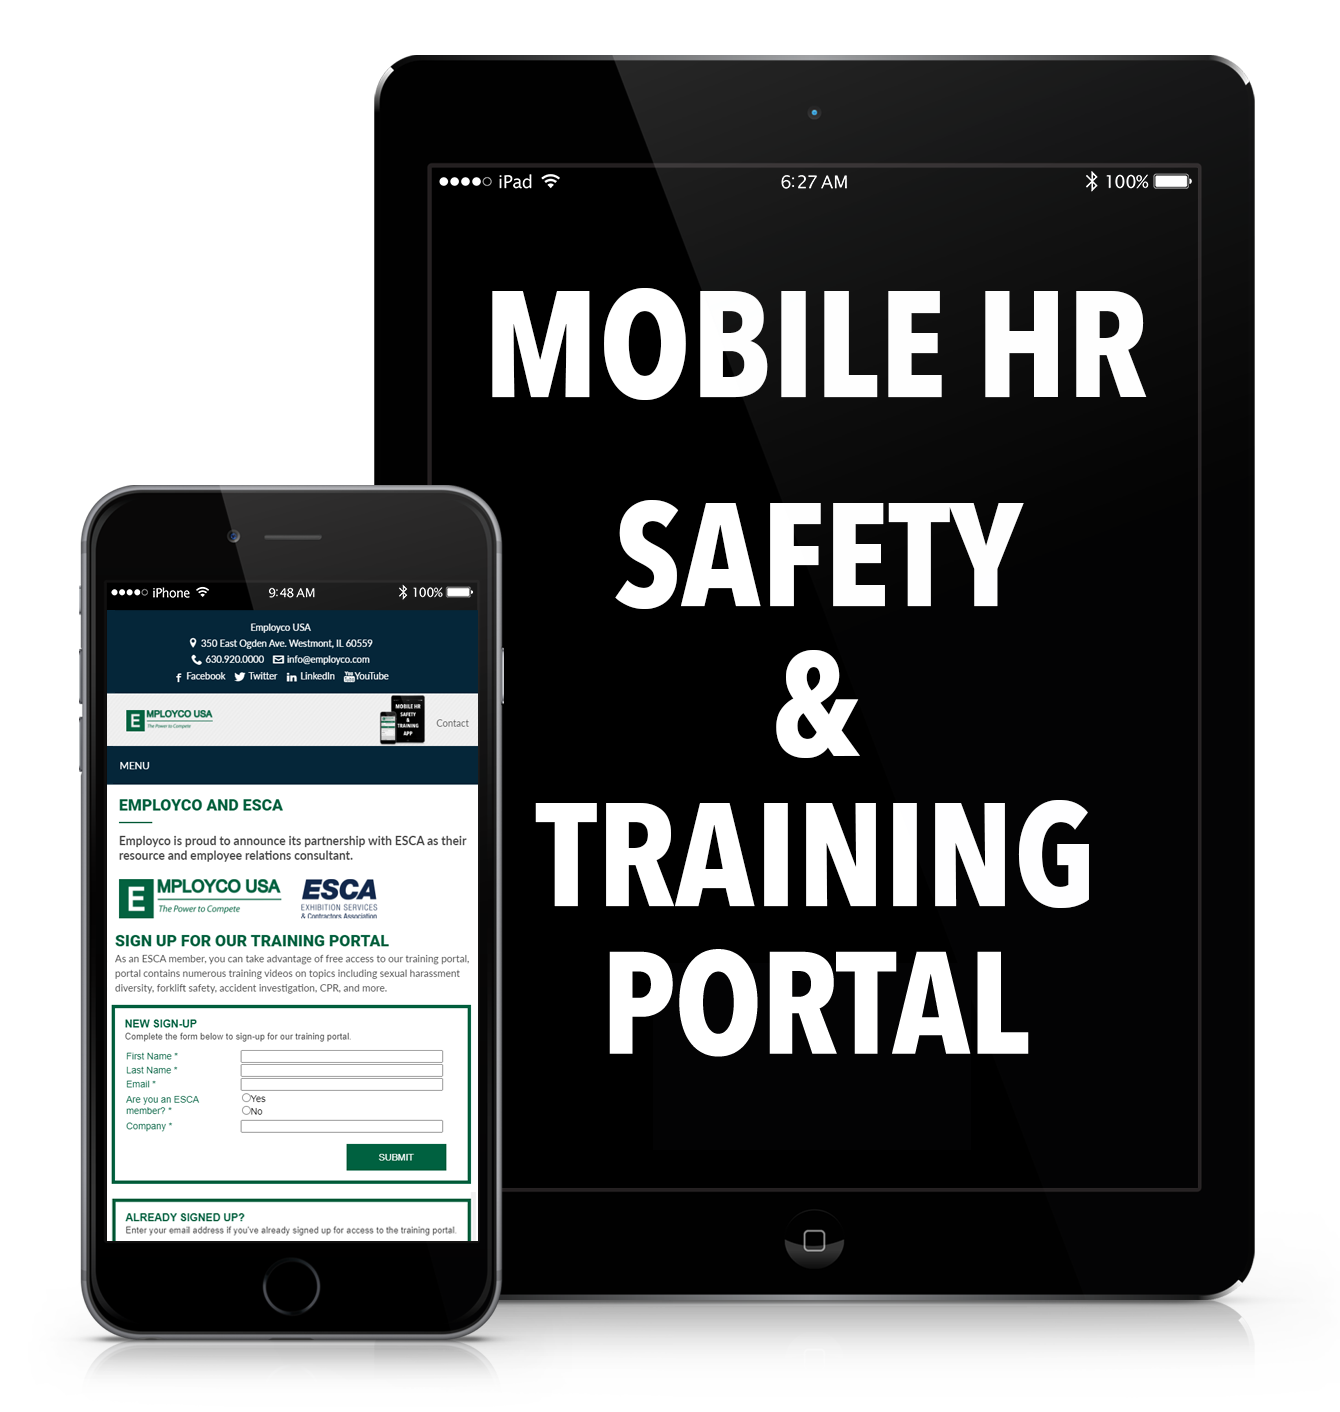 Mobile device training link.